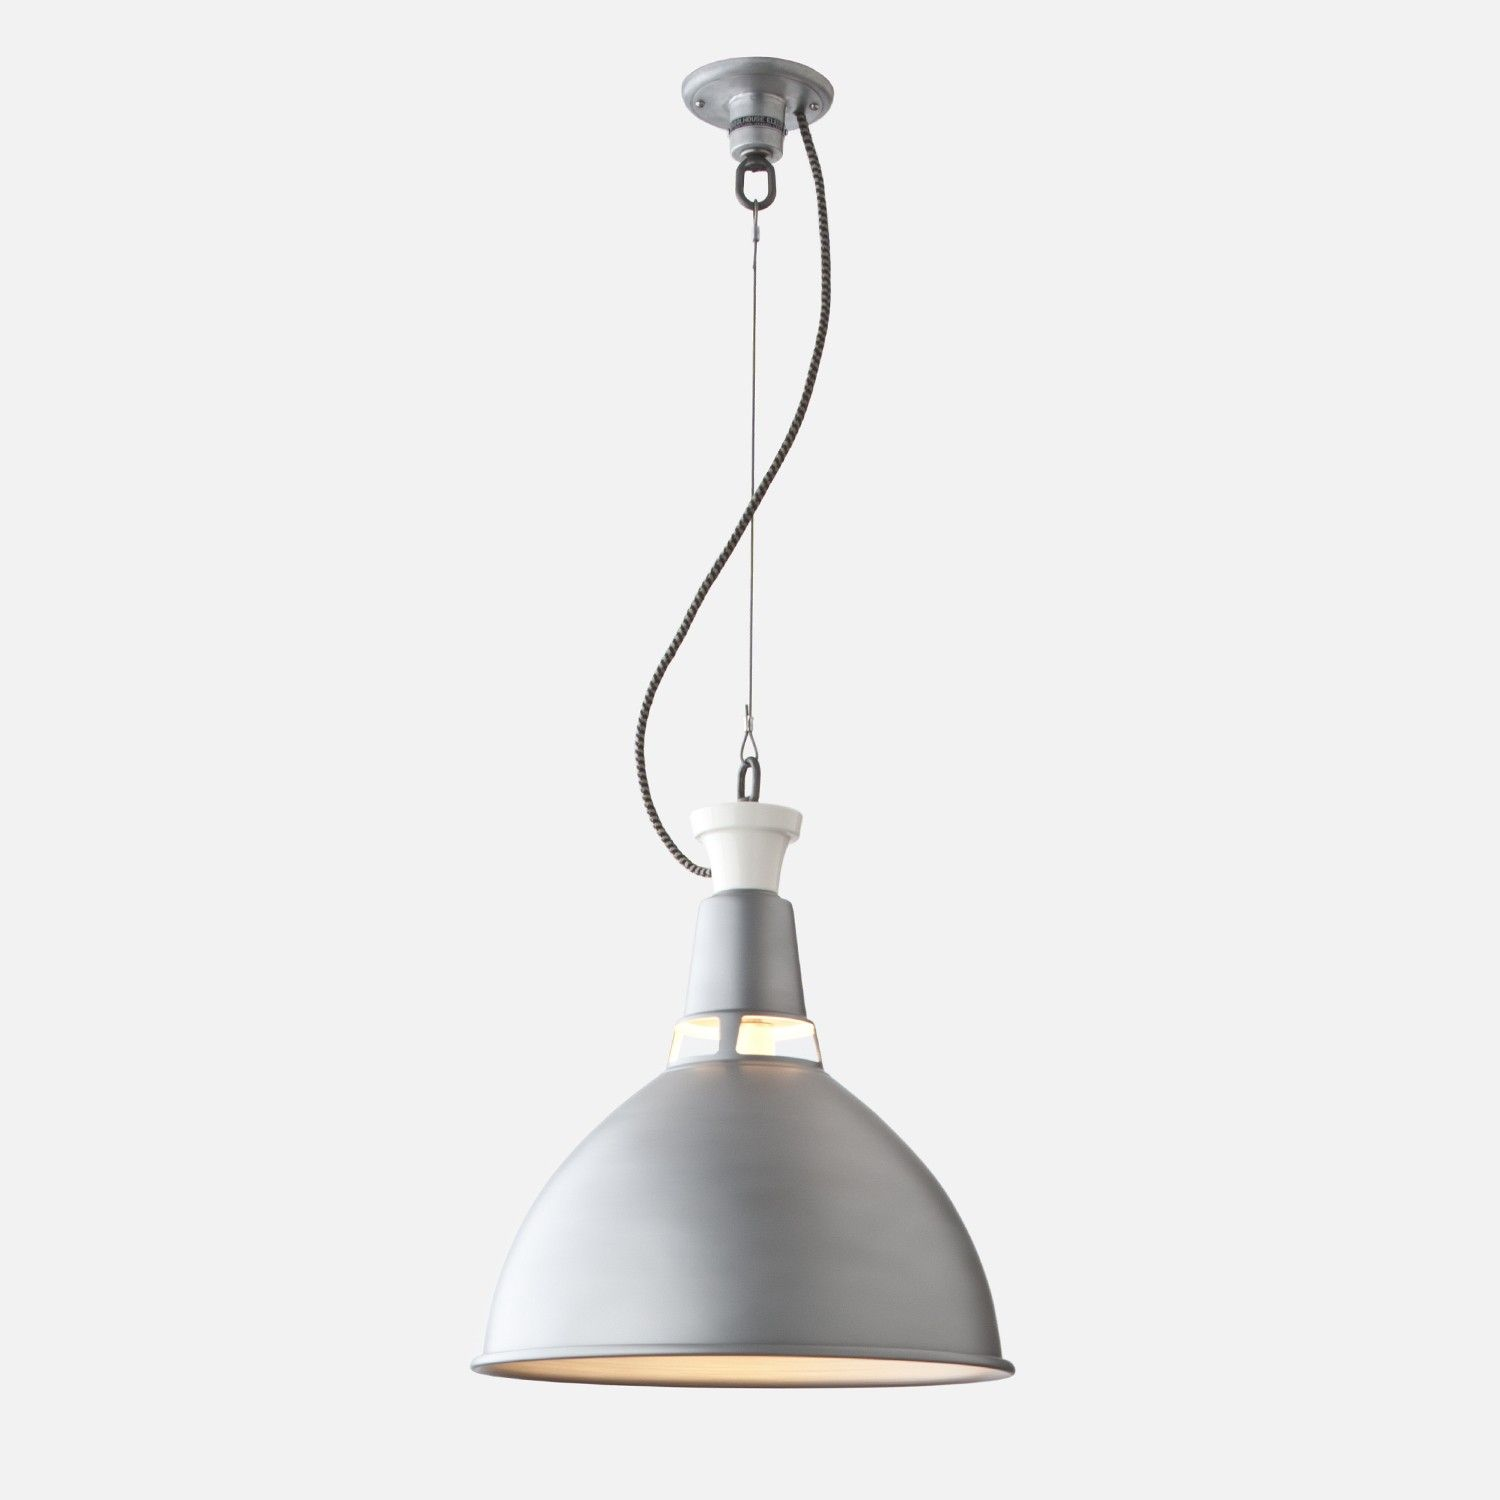 cable pendant lighting. 7 Cable Pendant Fixture | Schoolhouse Electric \u0026 Supply Co. Lighting F